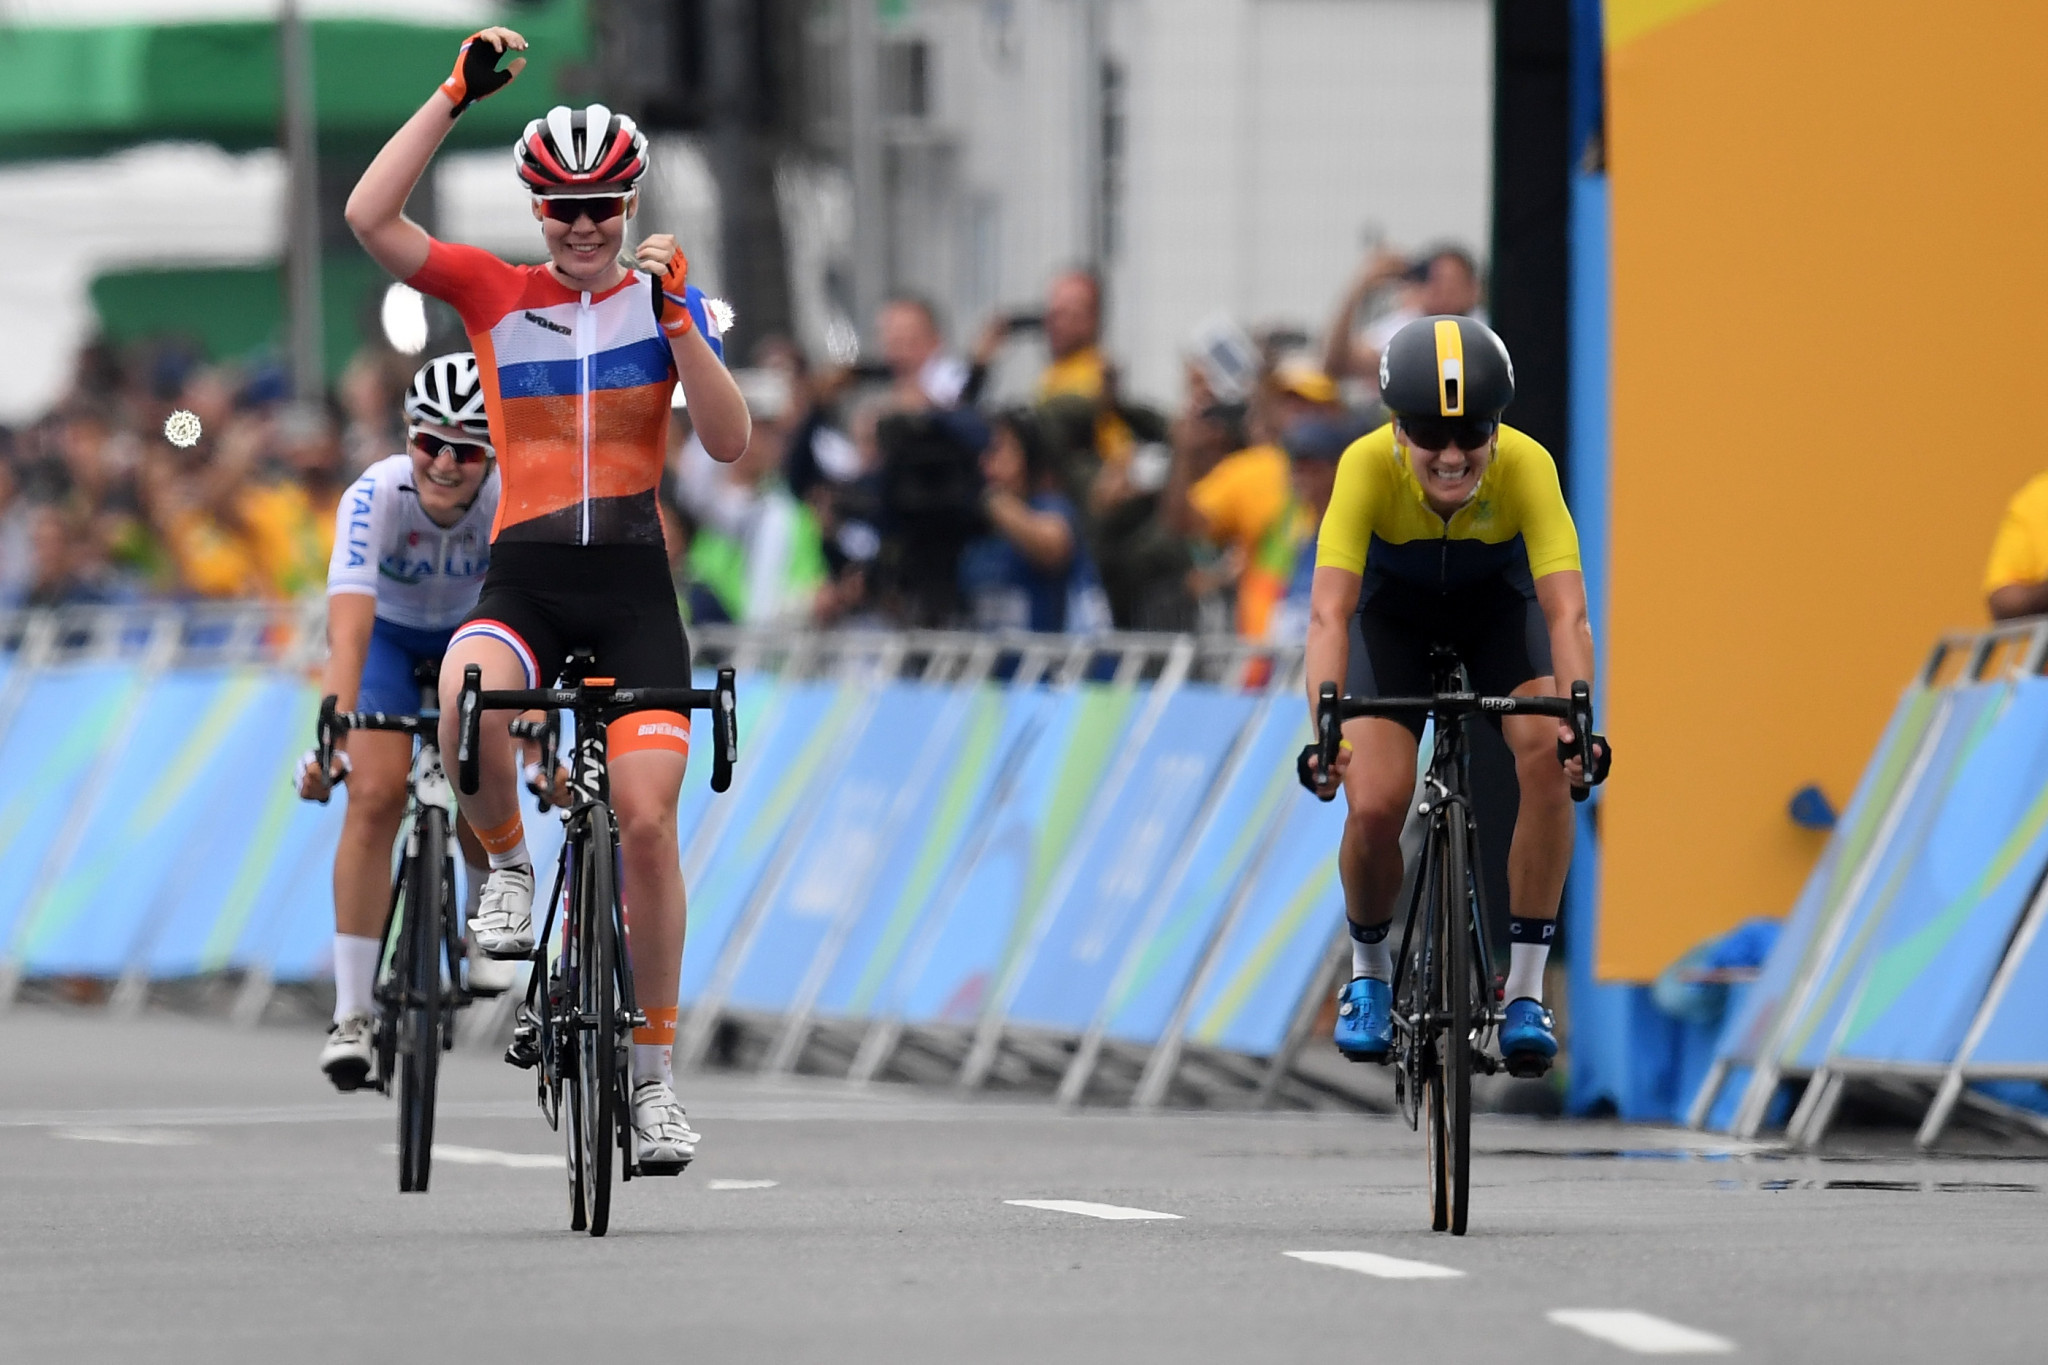 The Netherlands will have a full quota of riders for the women's road race ©Getty Images